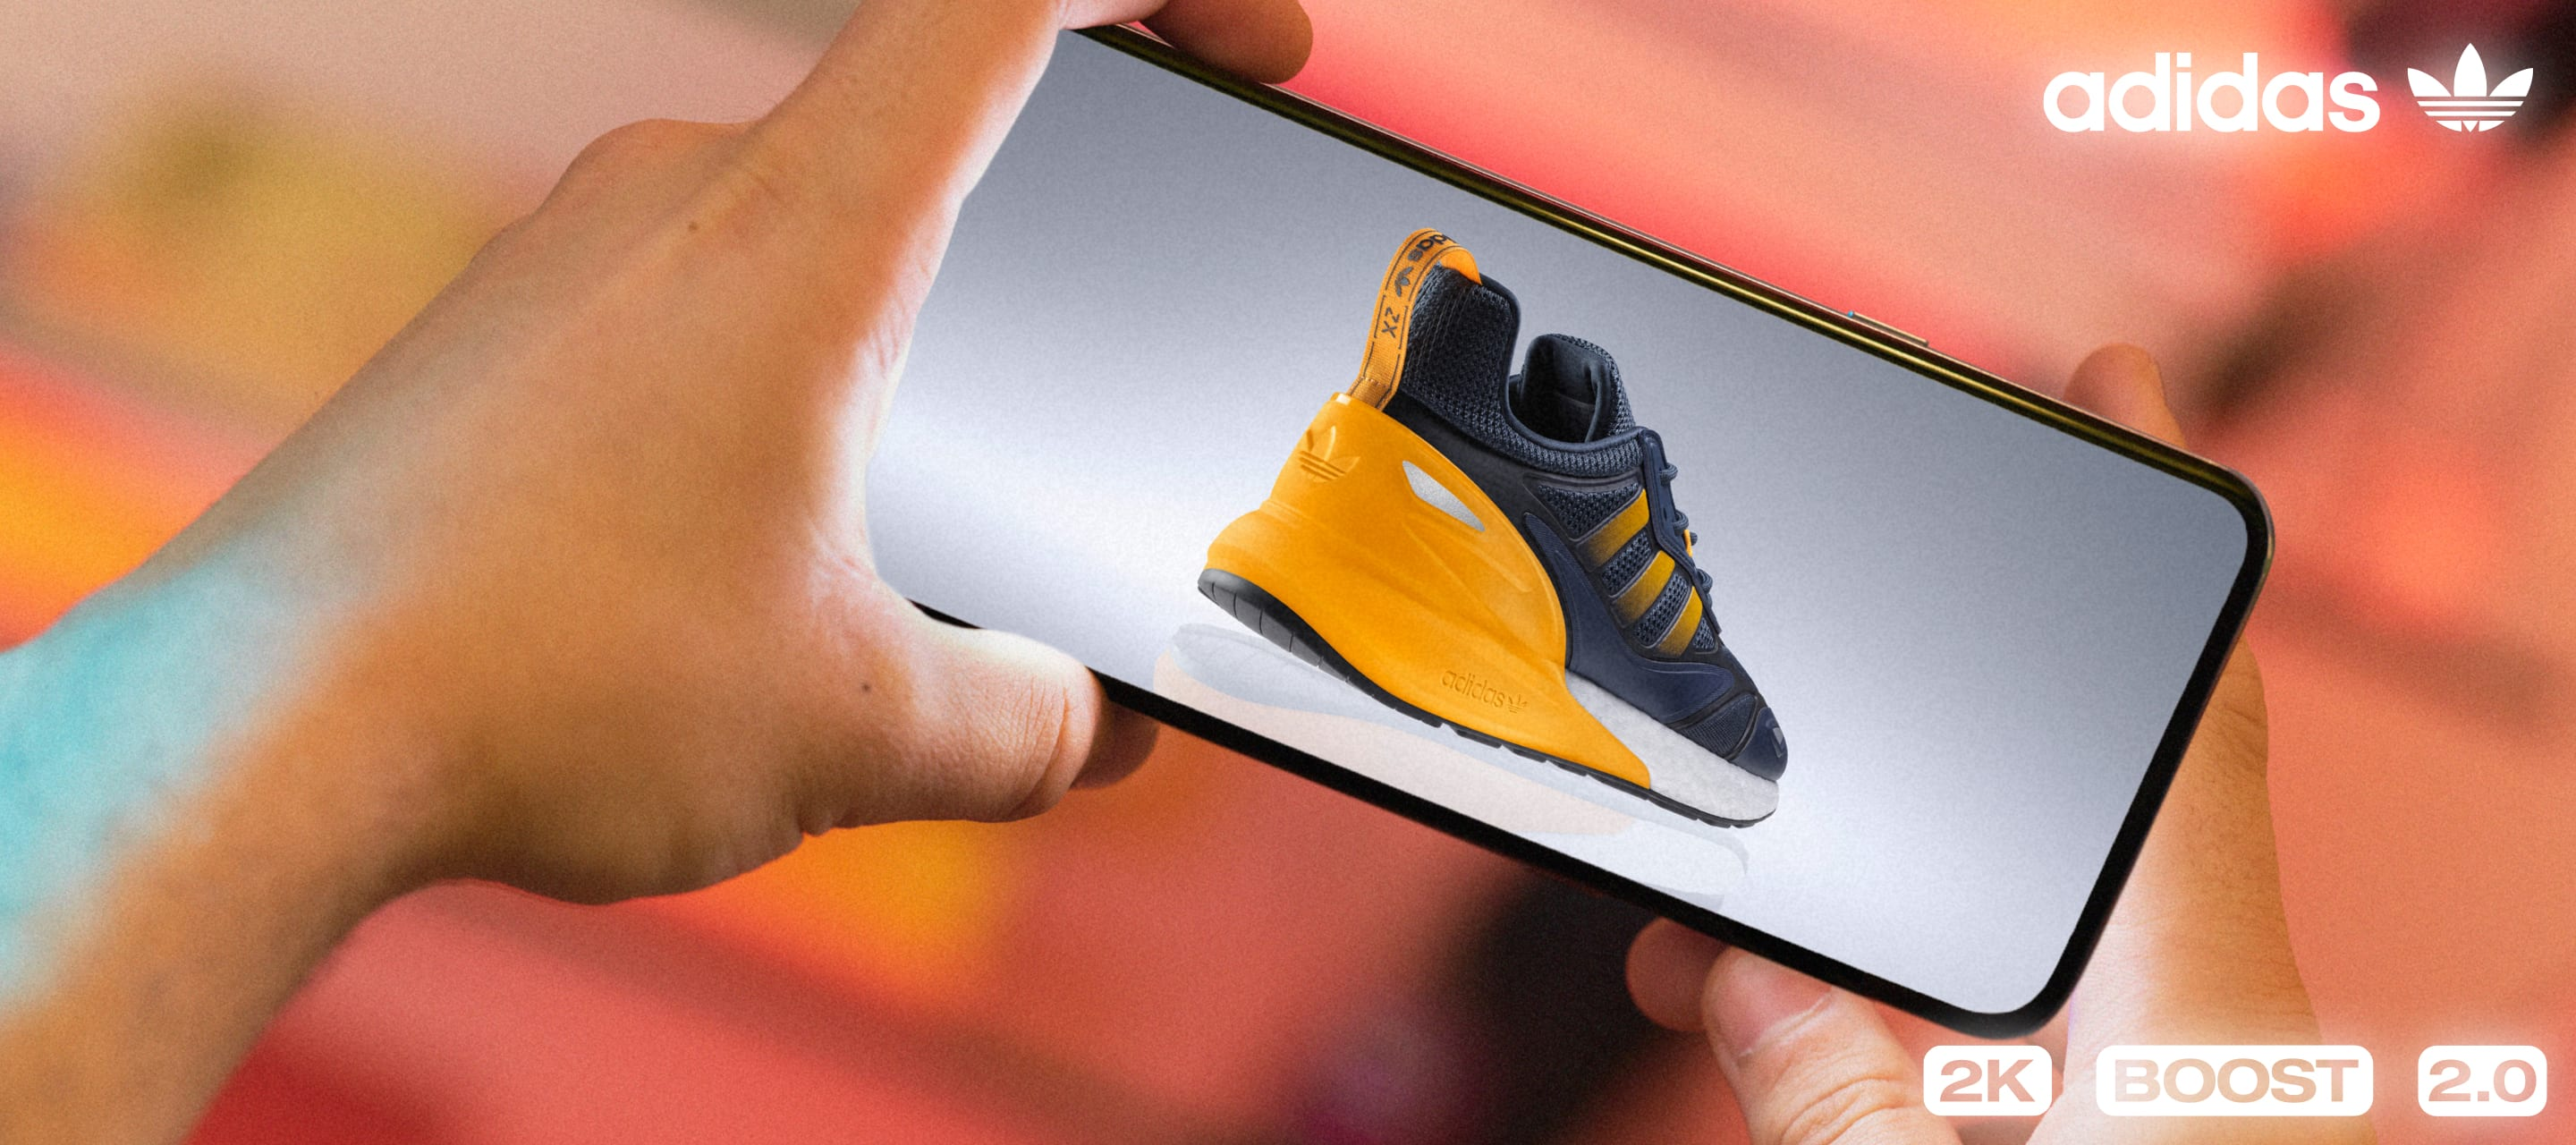 A model holds a cell phone that shows a back view of the ZX 2K Boost 2.0.